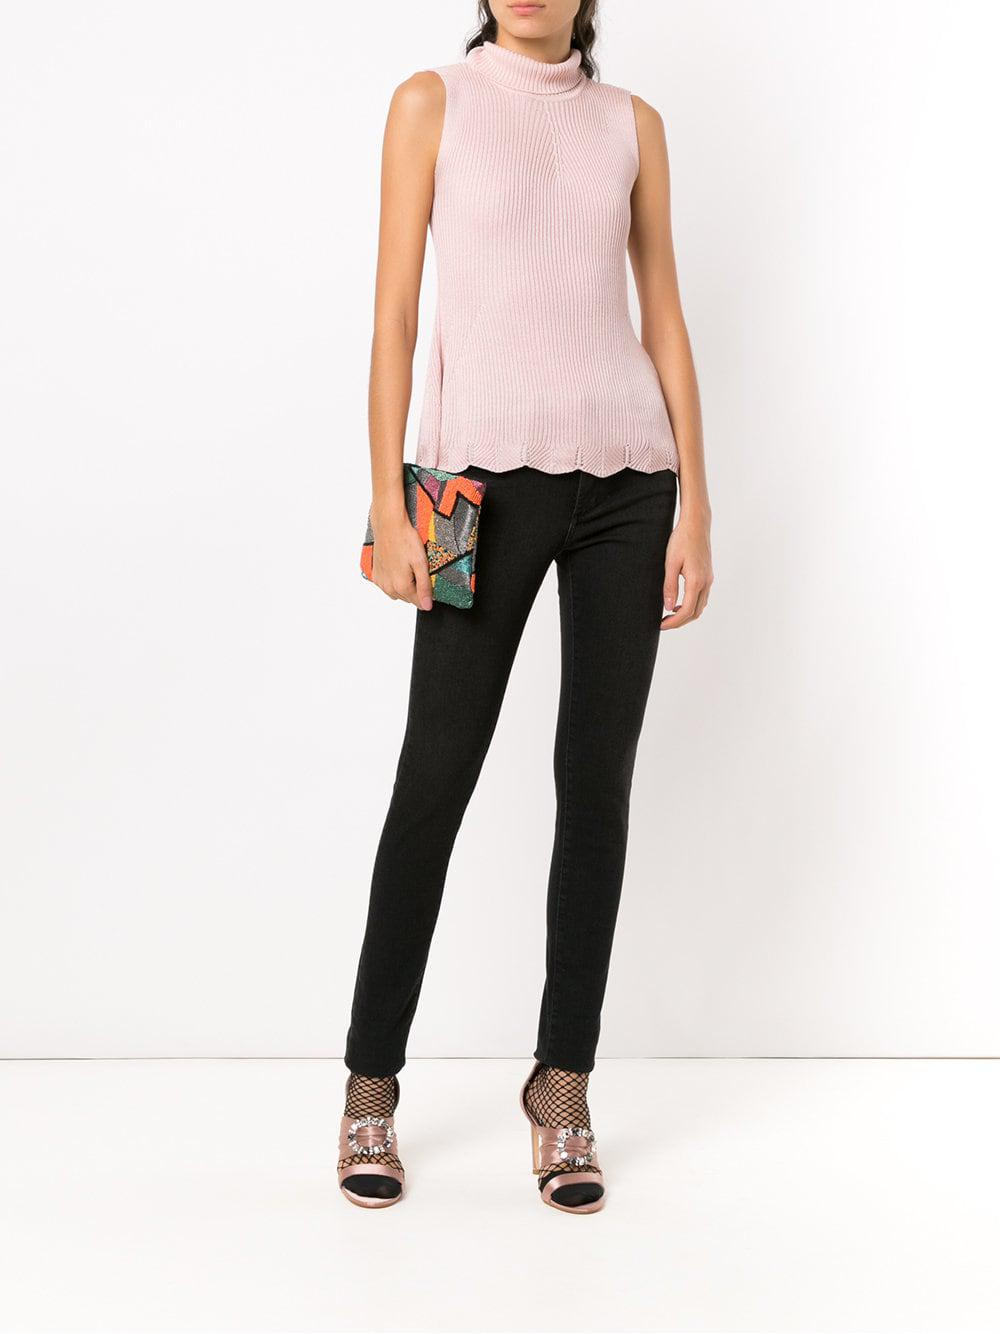 Cecilia Prado Synthetic Lucena Knit Blouse in Pink